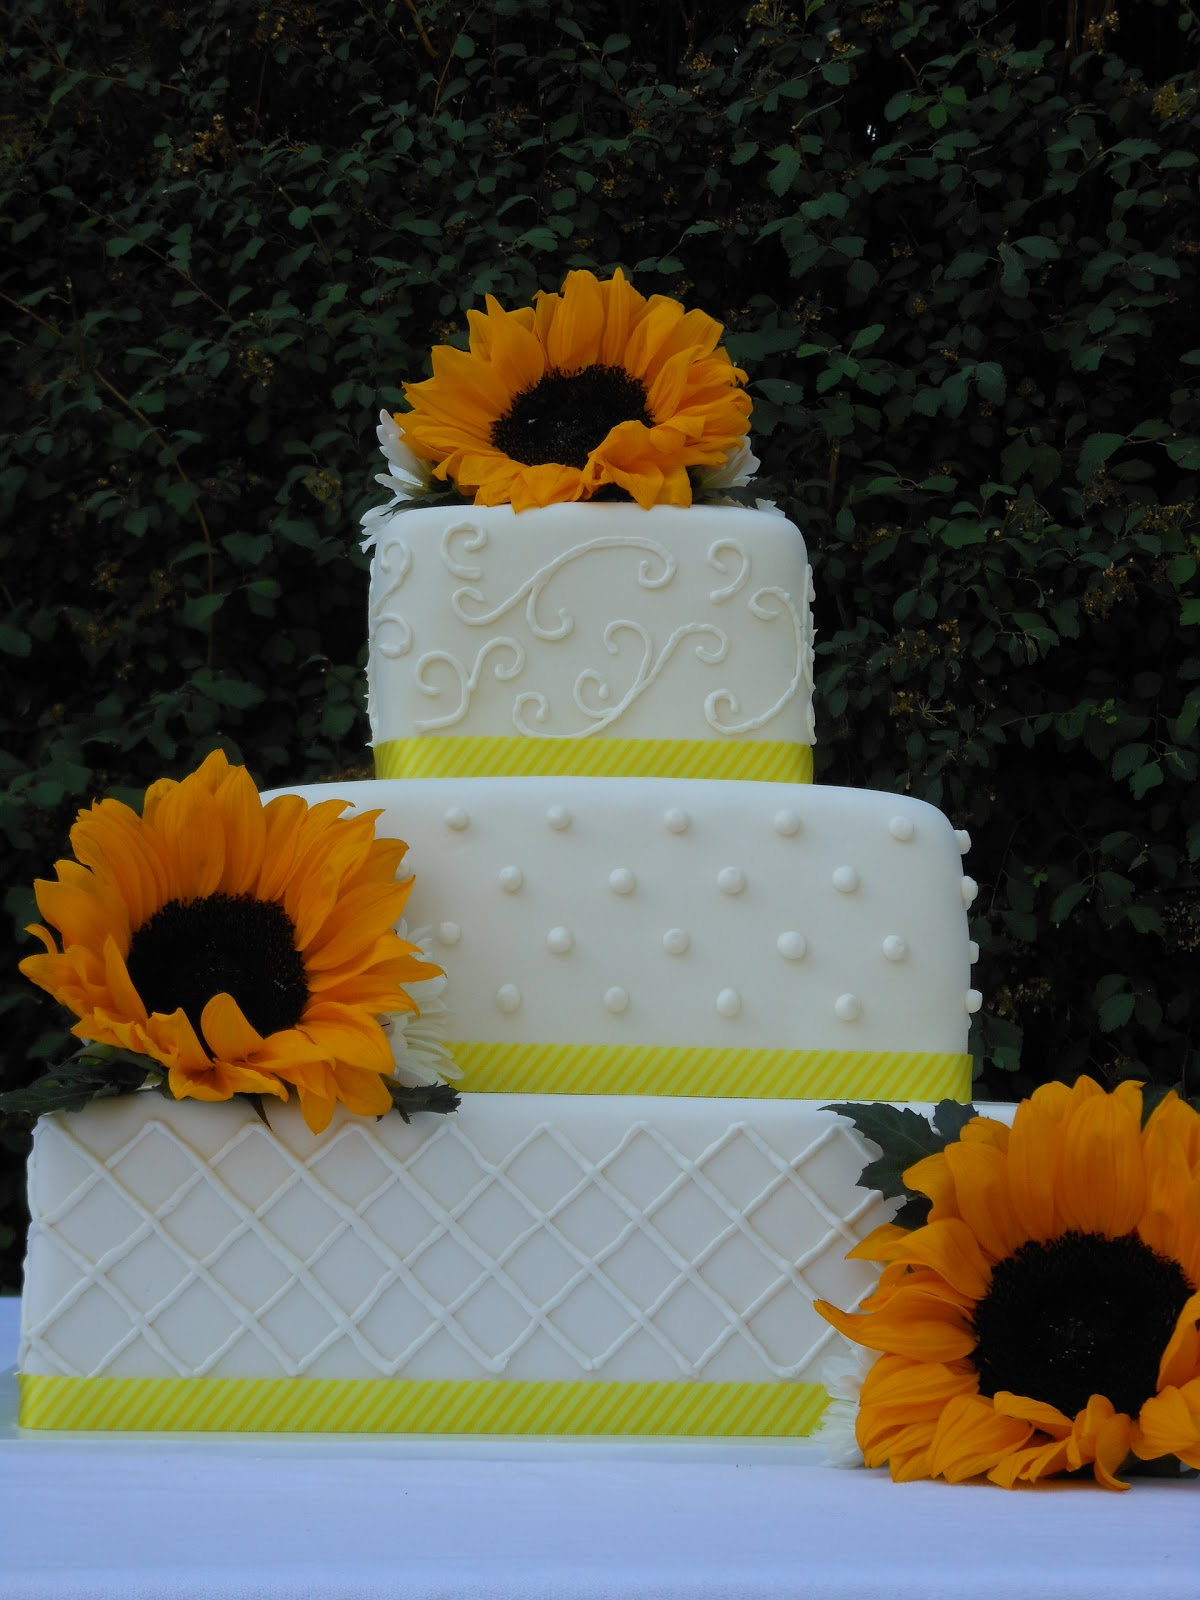 Sunflower Wedding Cakes Cake Ideas and Designs